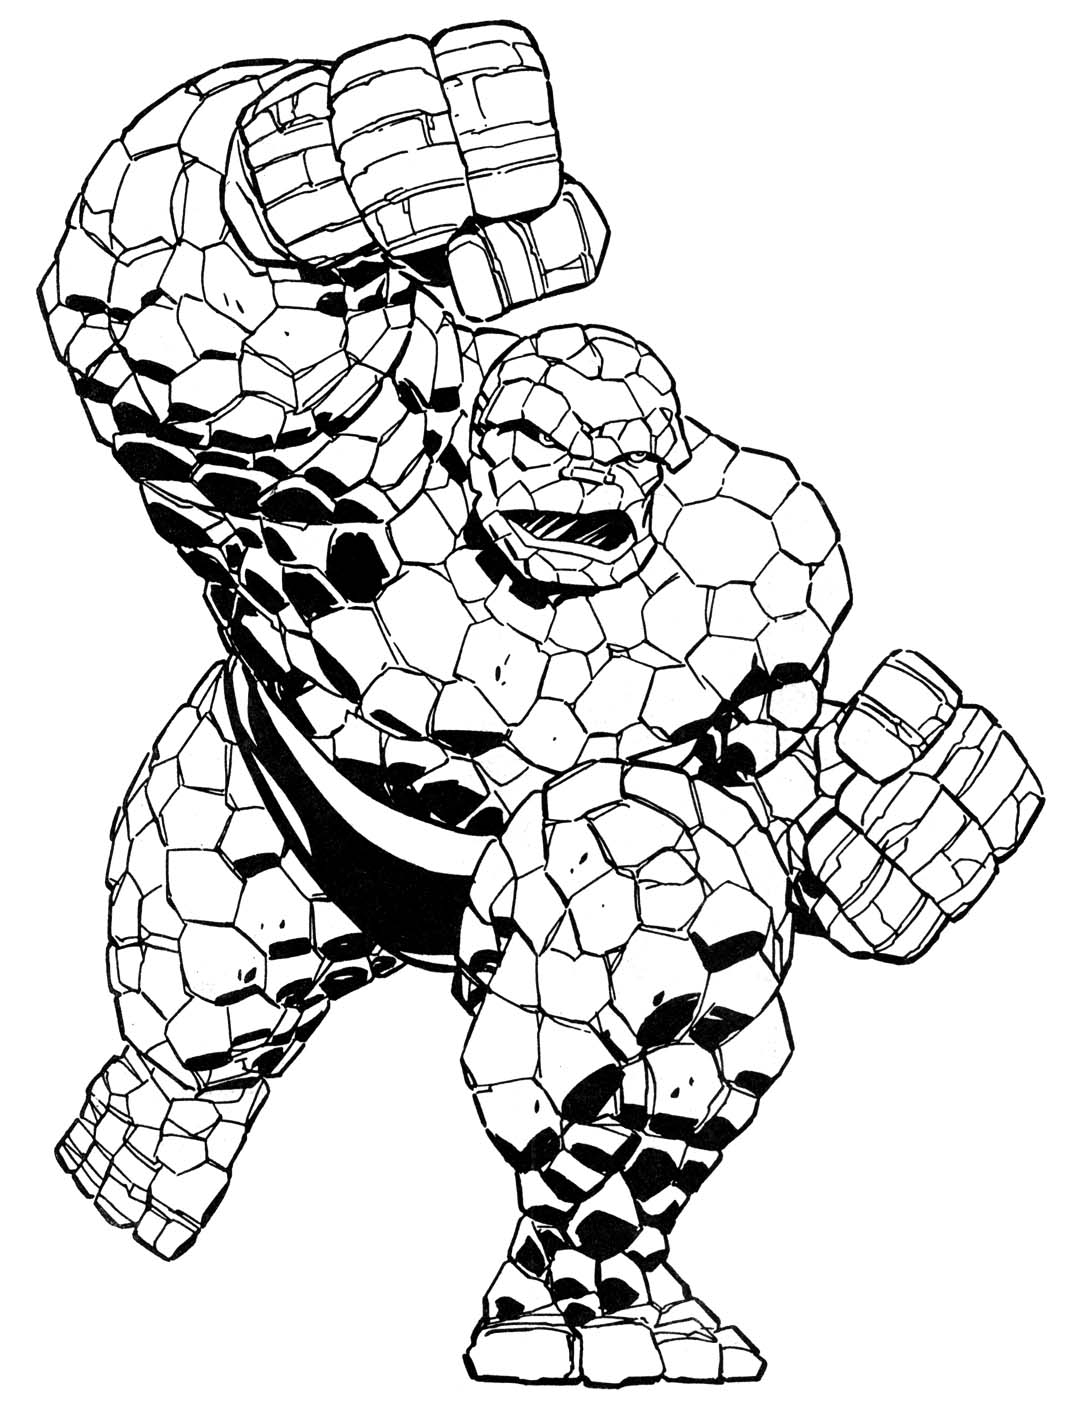 marvel superheroes coloring pages - photo#16